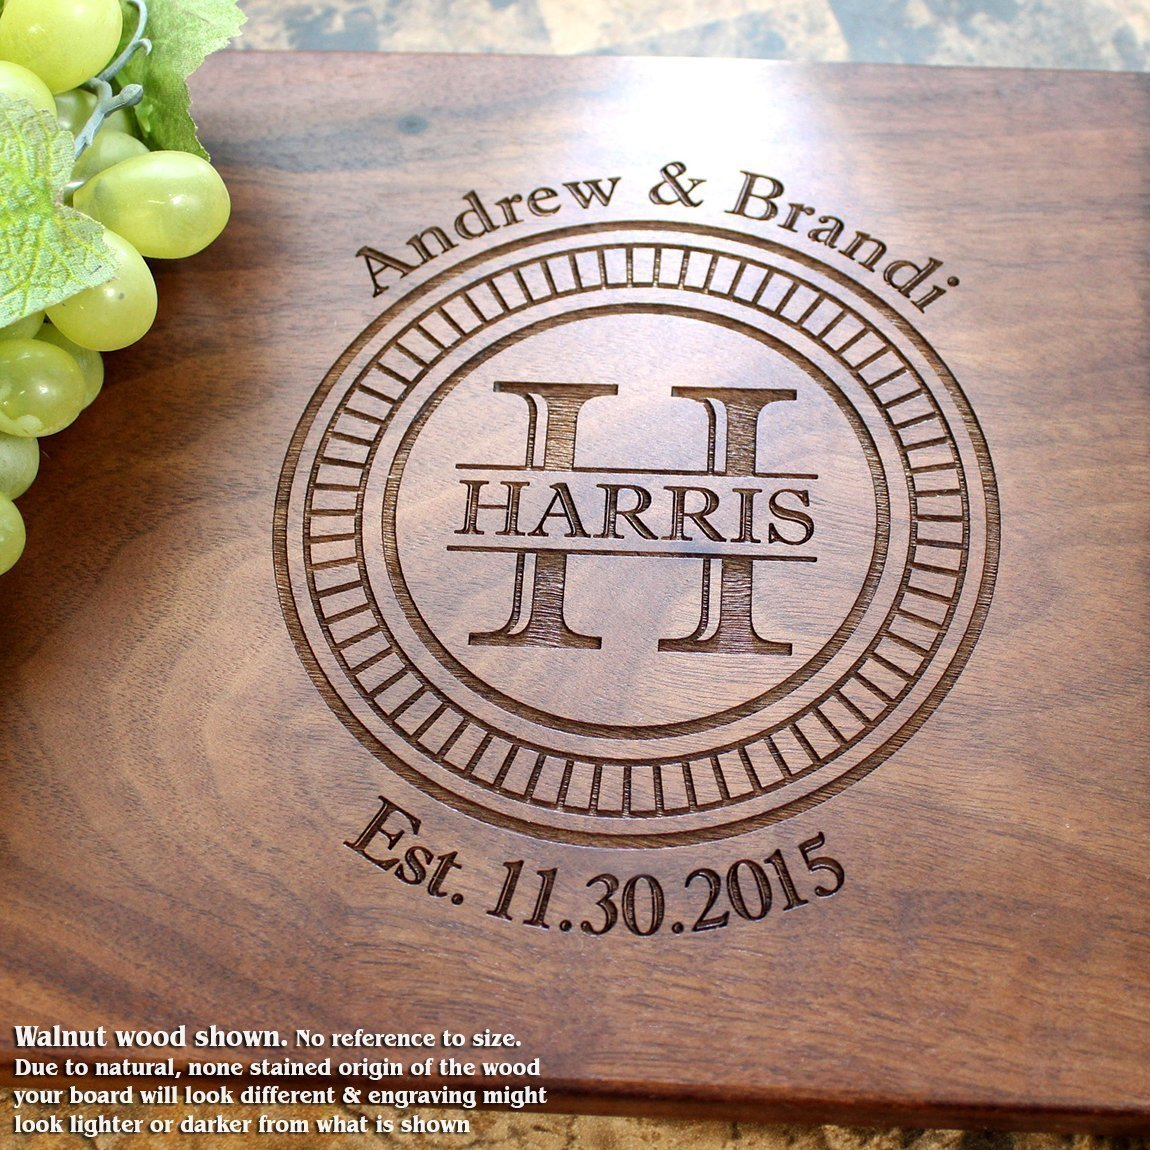 Personalized Cutting Board, Custom Keepsake, Engraved Serving Cheese Plate, Wedding, Anniversary, Engagement, Housewarming, Birthday, Corporate, Closing Gift #006